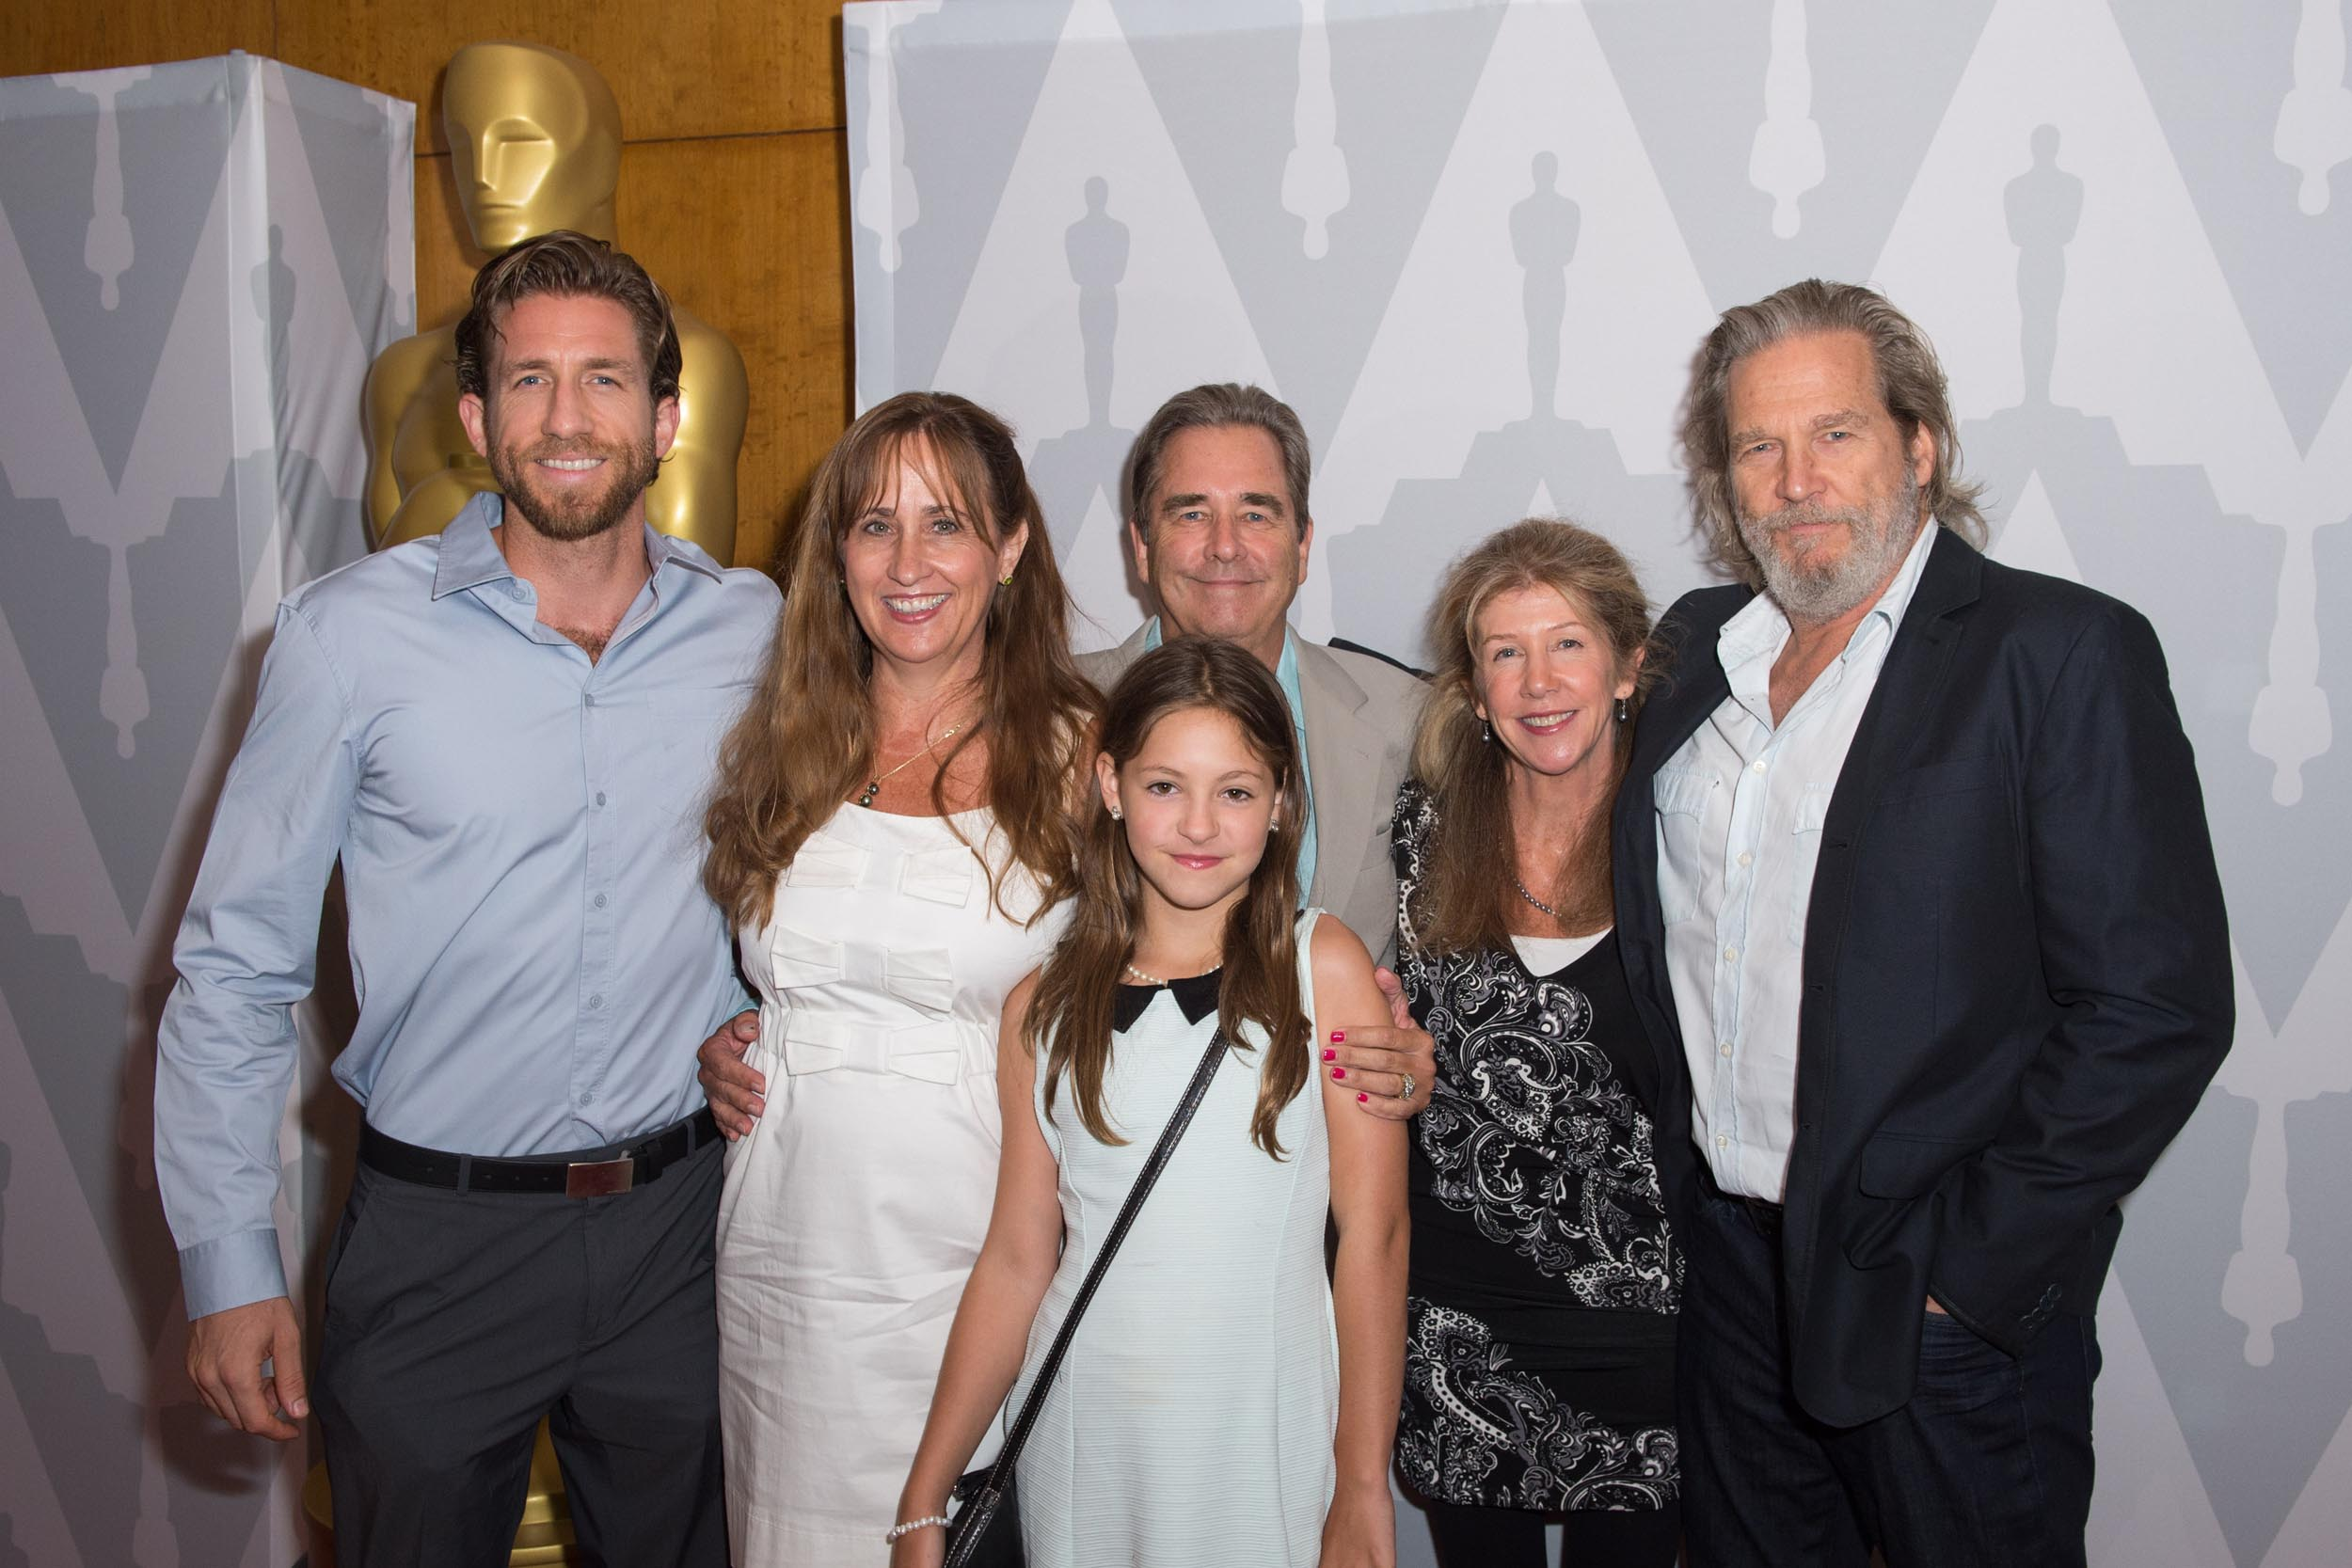 Pictured (left to right): Marcel Bridges, Wendy Treece Bridges, Beau Bridges, Lola Bridges, Cindy Bridges and Jeff Bridges, prior to the event.